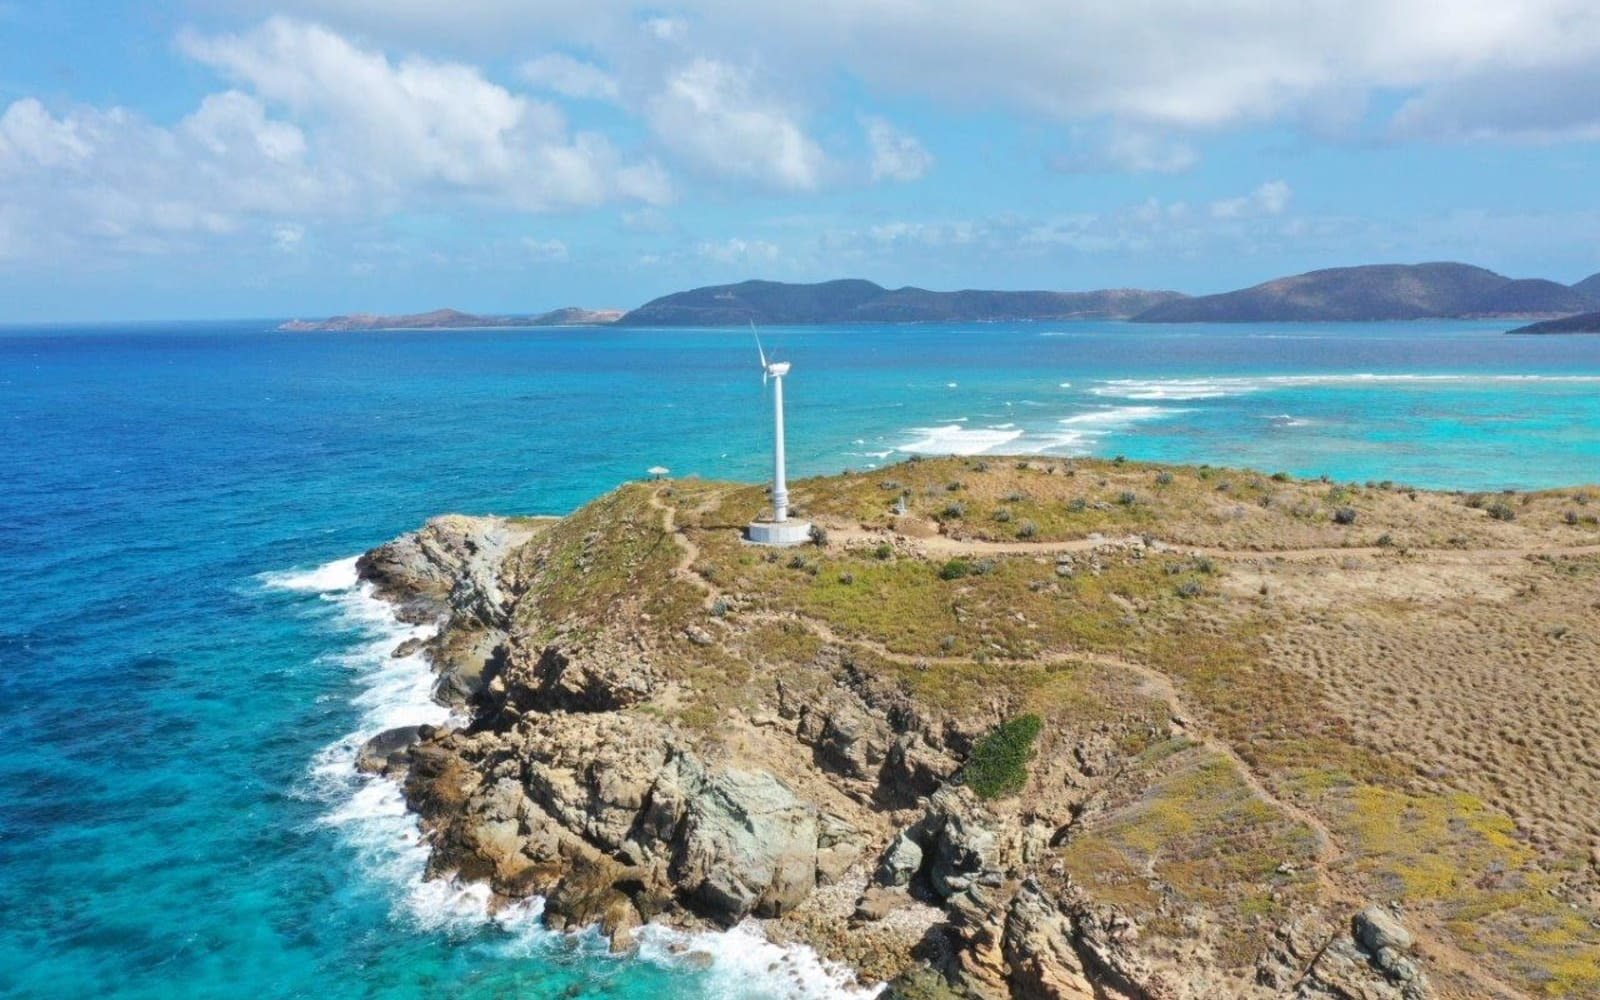 A wind turbine on the tip of an island, surrounded by the ocean